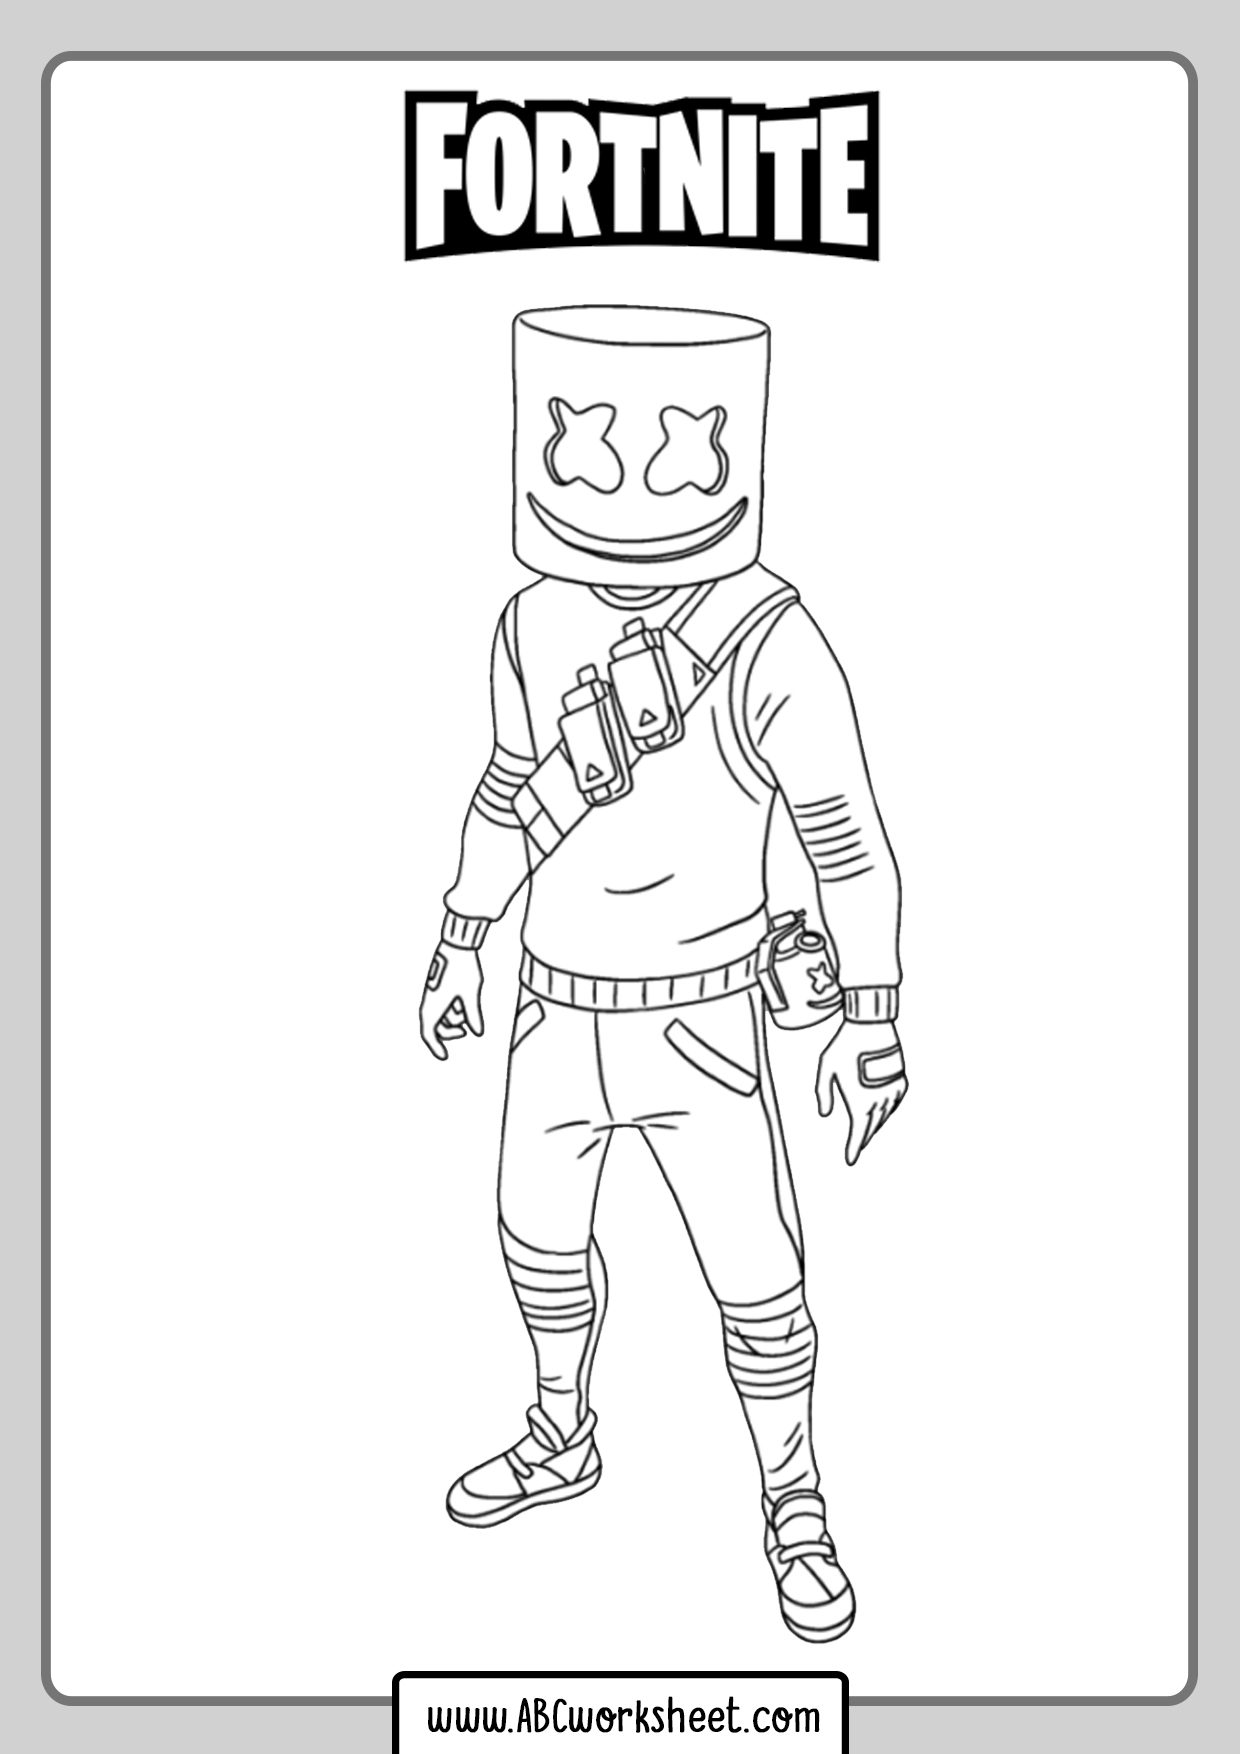 free printable fortnite coloring pages 34 free printable fortnite coloring pages printable fortnite coloring free pages